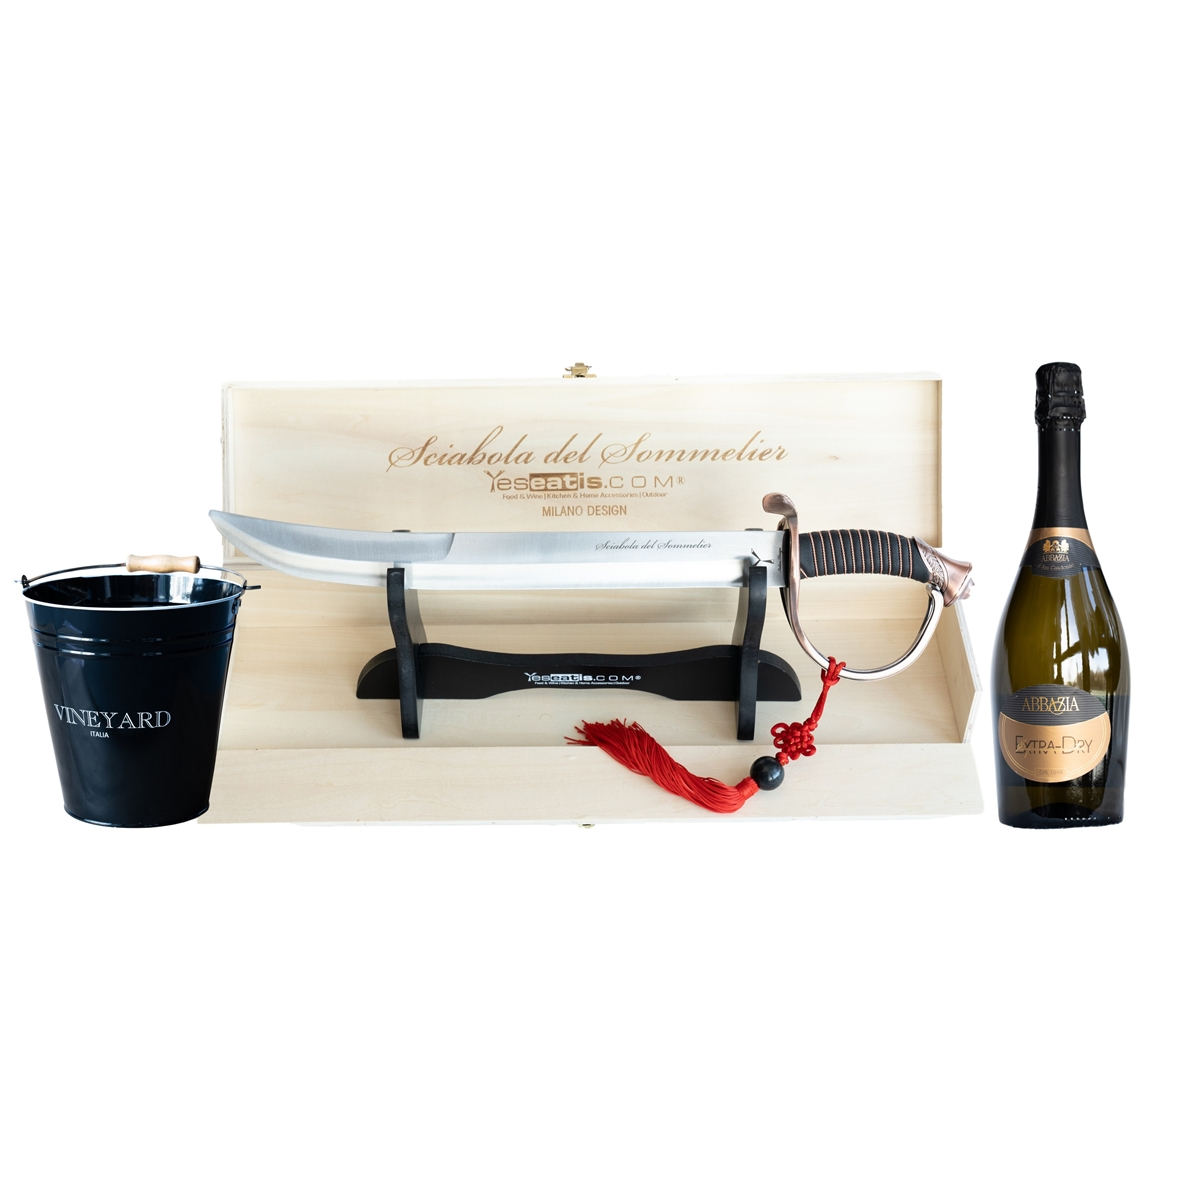 Sabrage Starter Kit with Sommelier Champagne Opener - Ice Bucket and Italian Spumante extra Dry